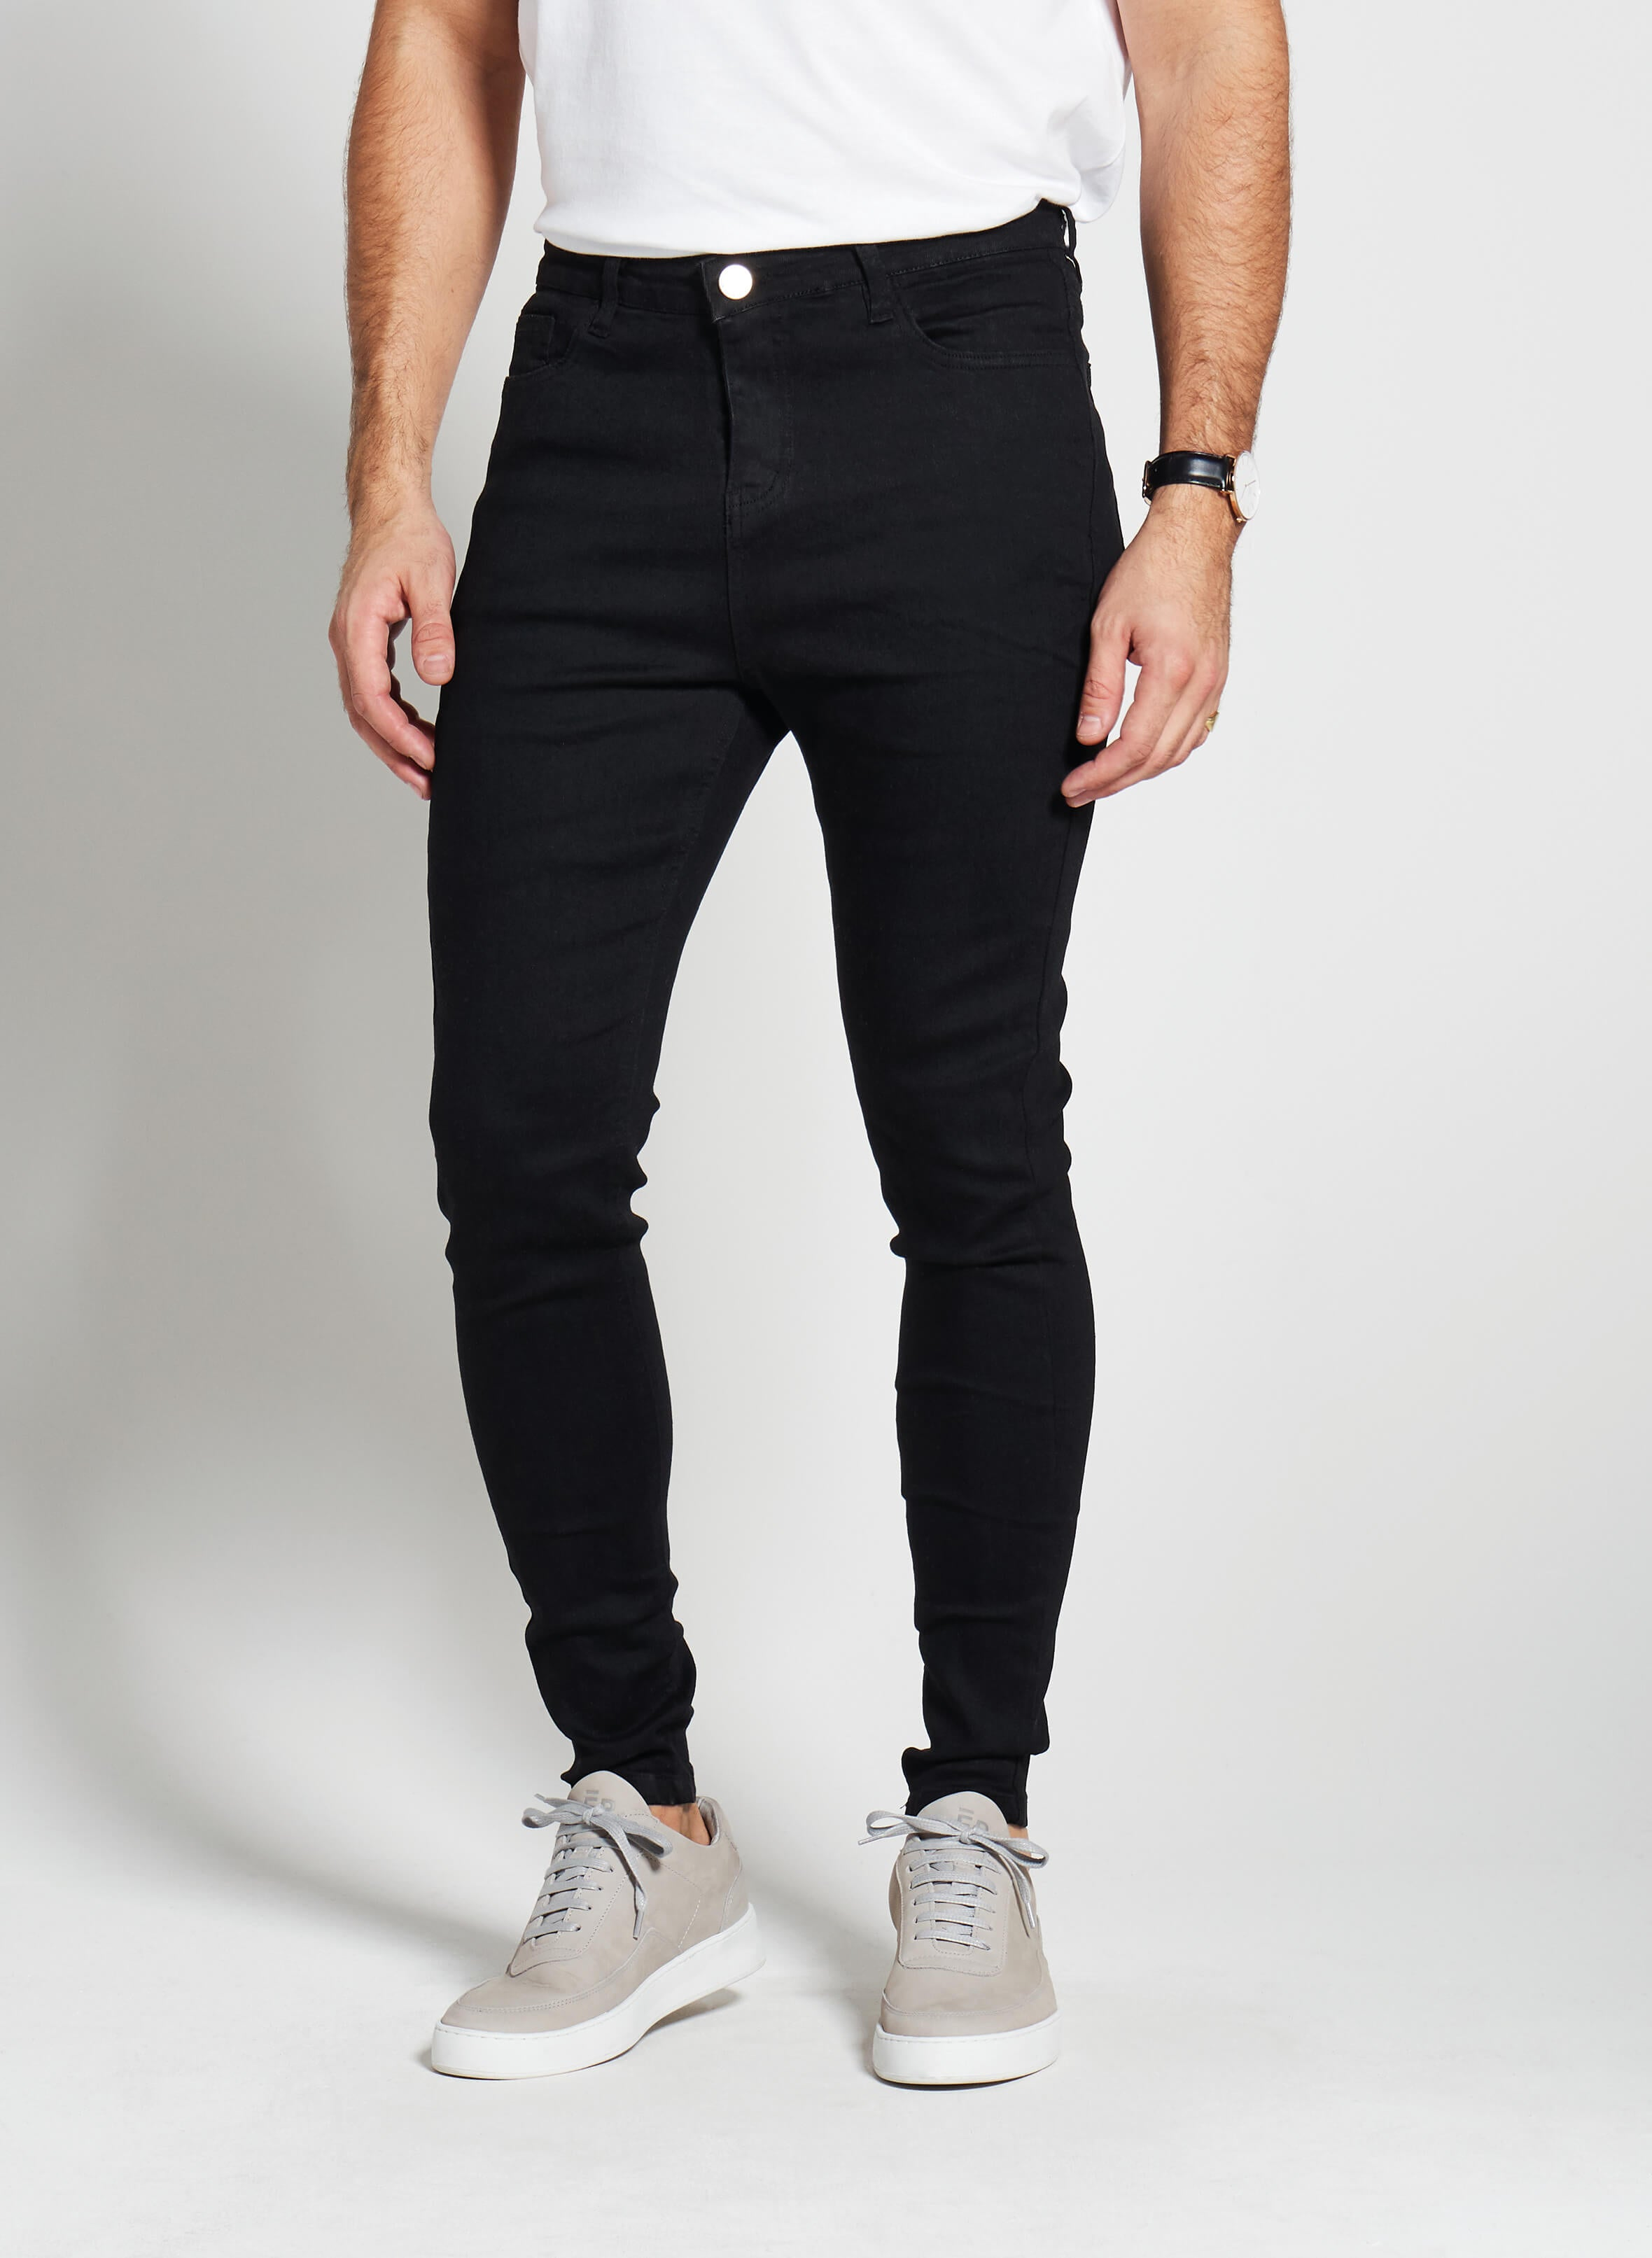 Men's spray on denim jeans, skinny stretch fit